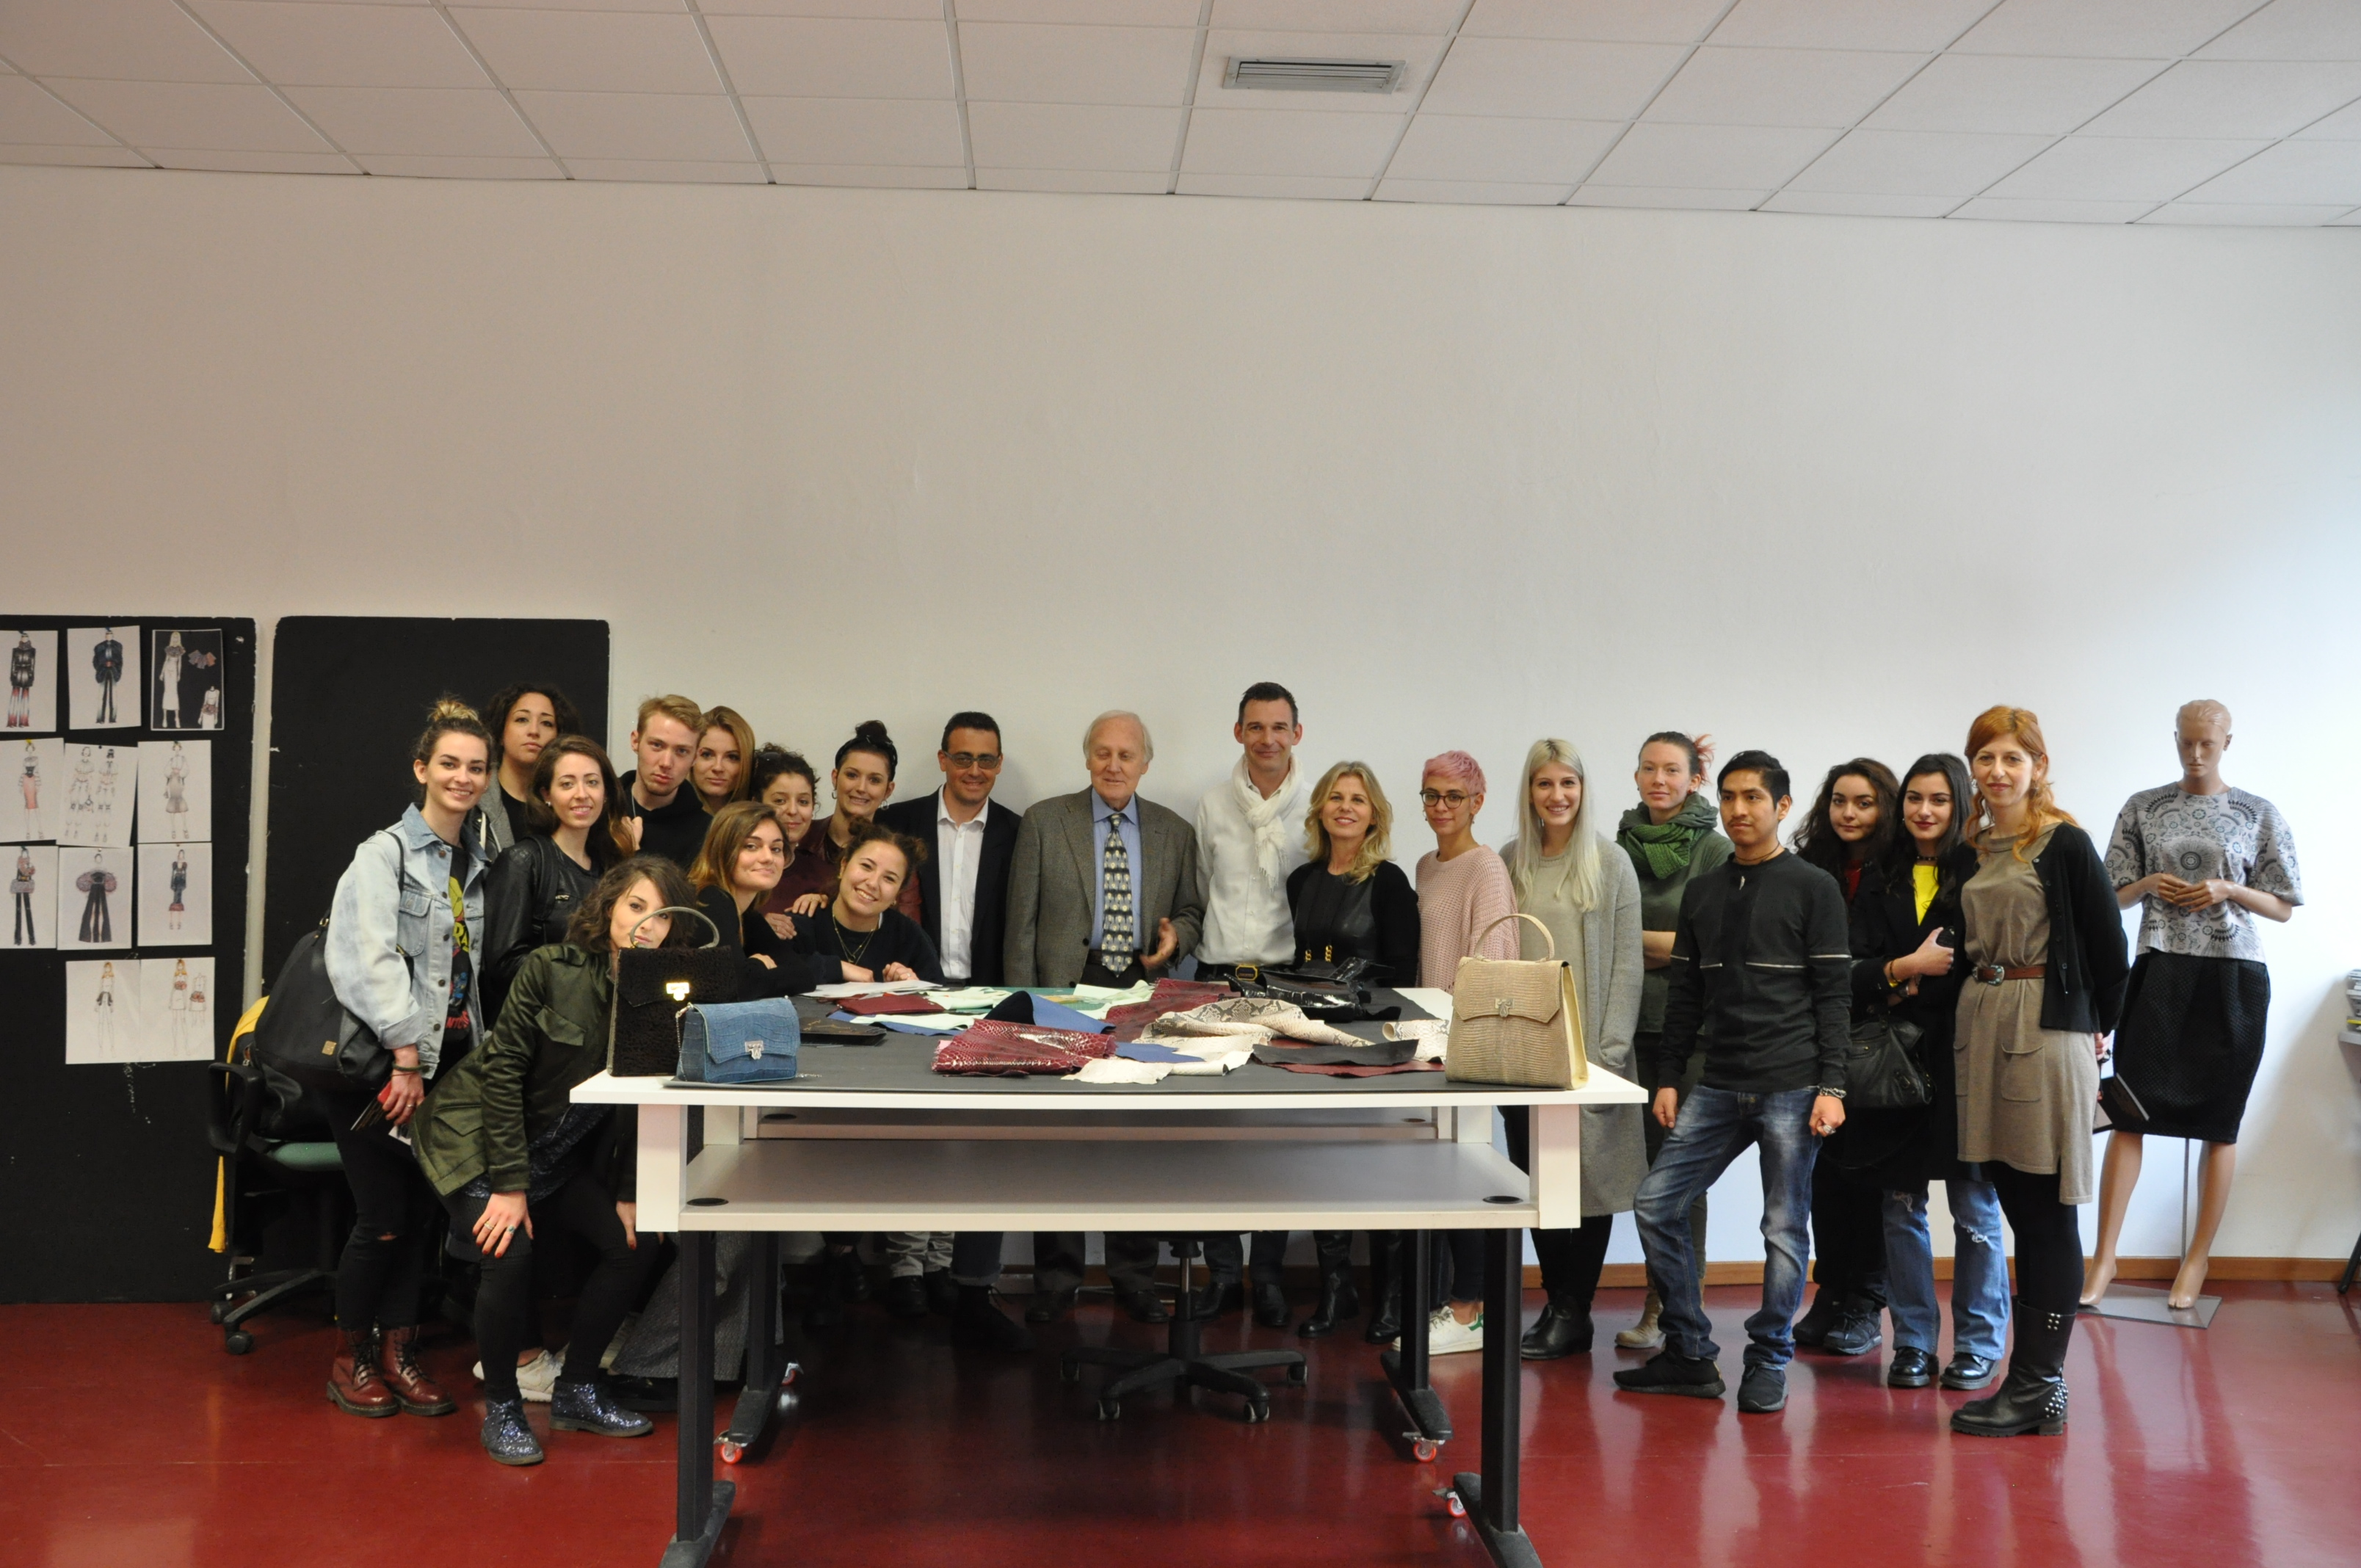 Fvcina in cattedra al mks milano fashion school for Milano fashion school